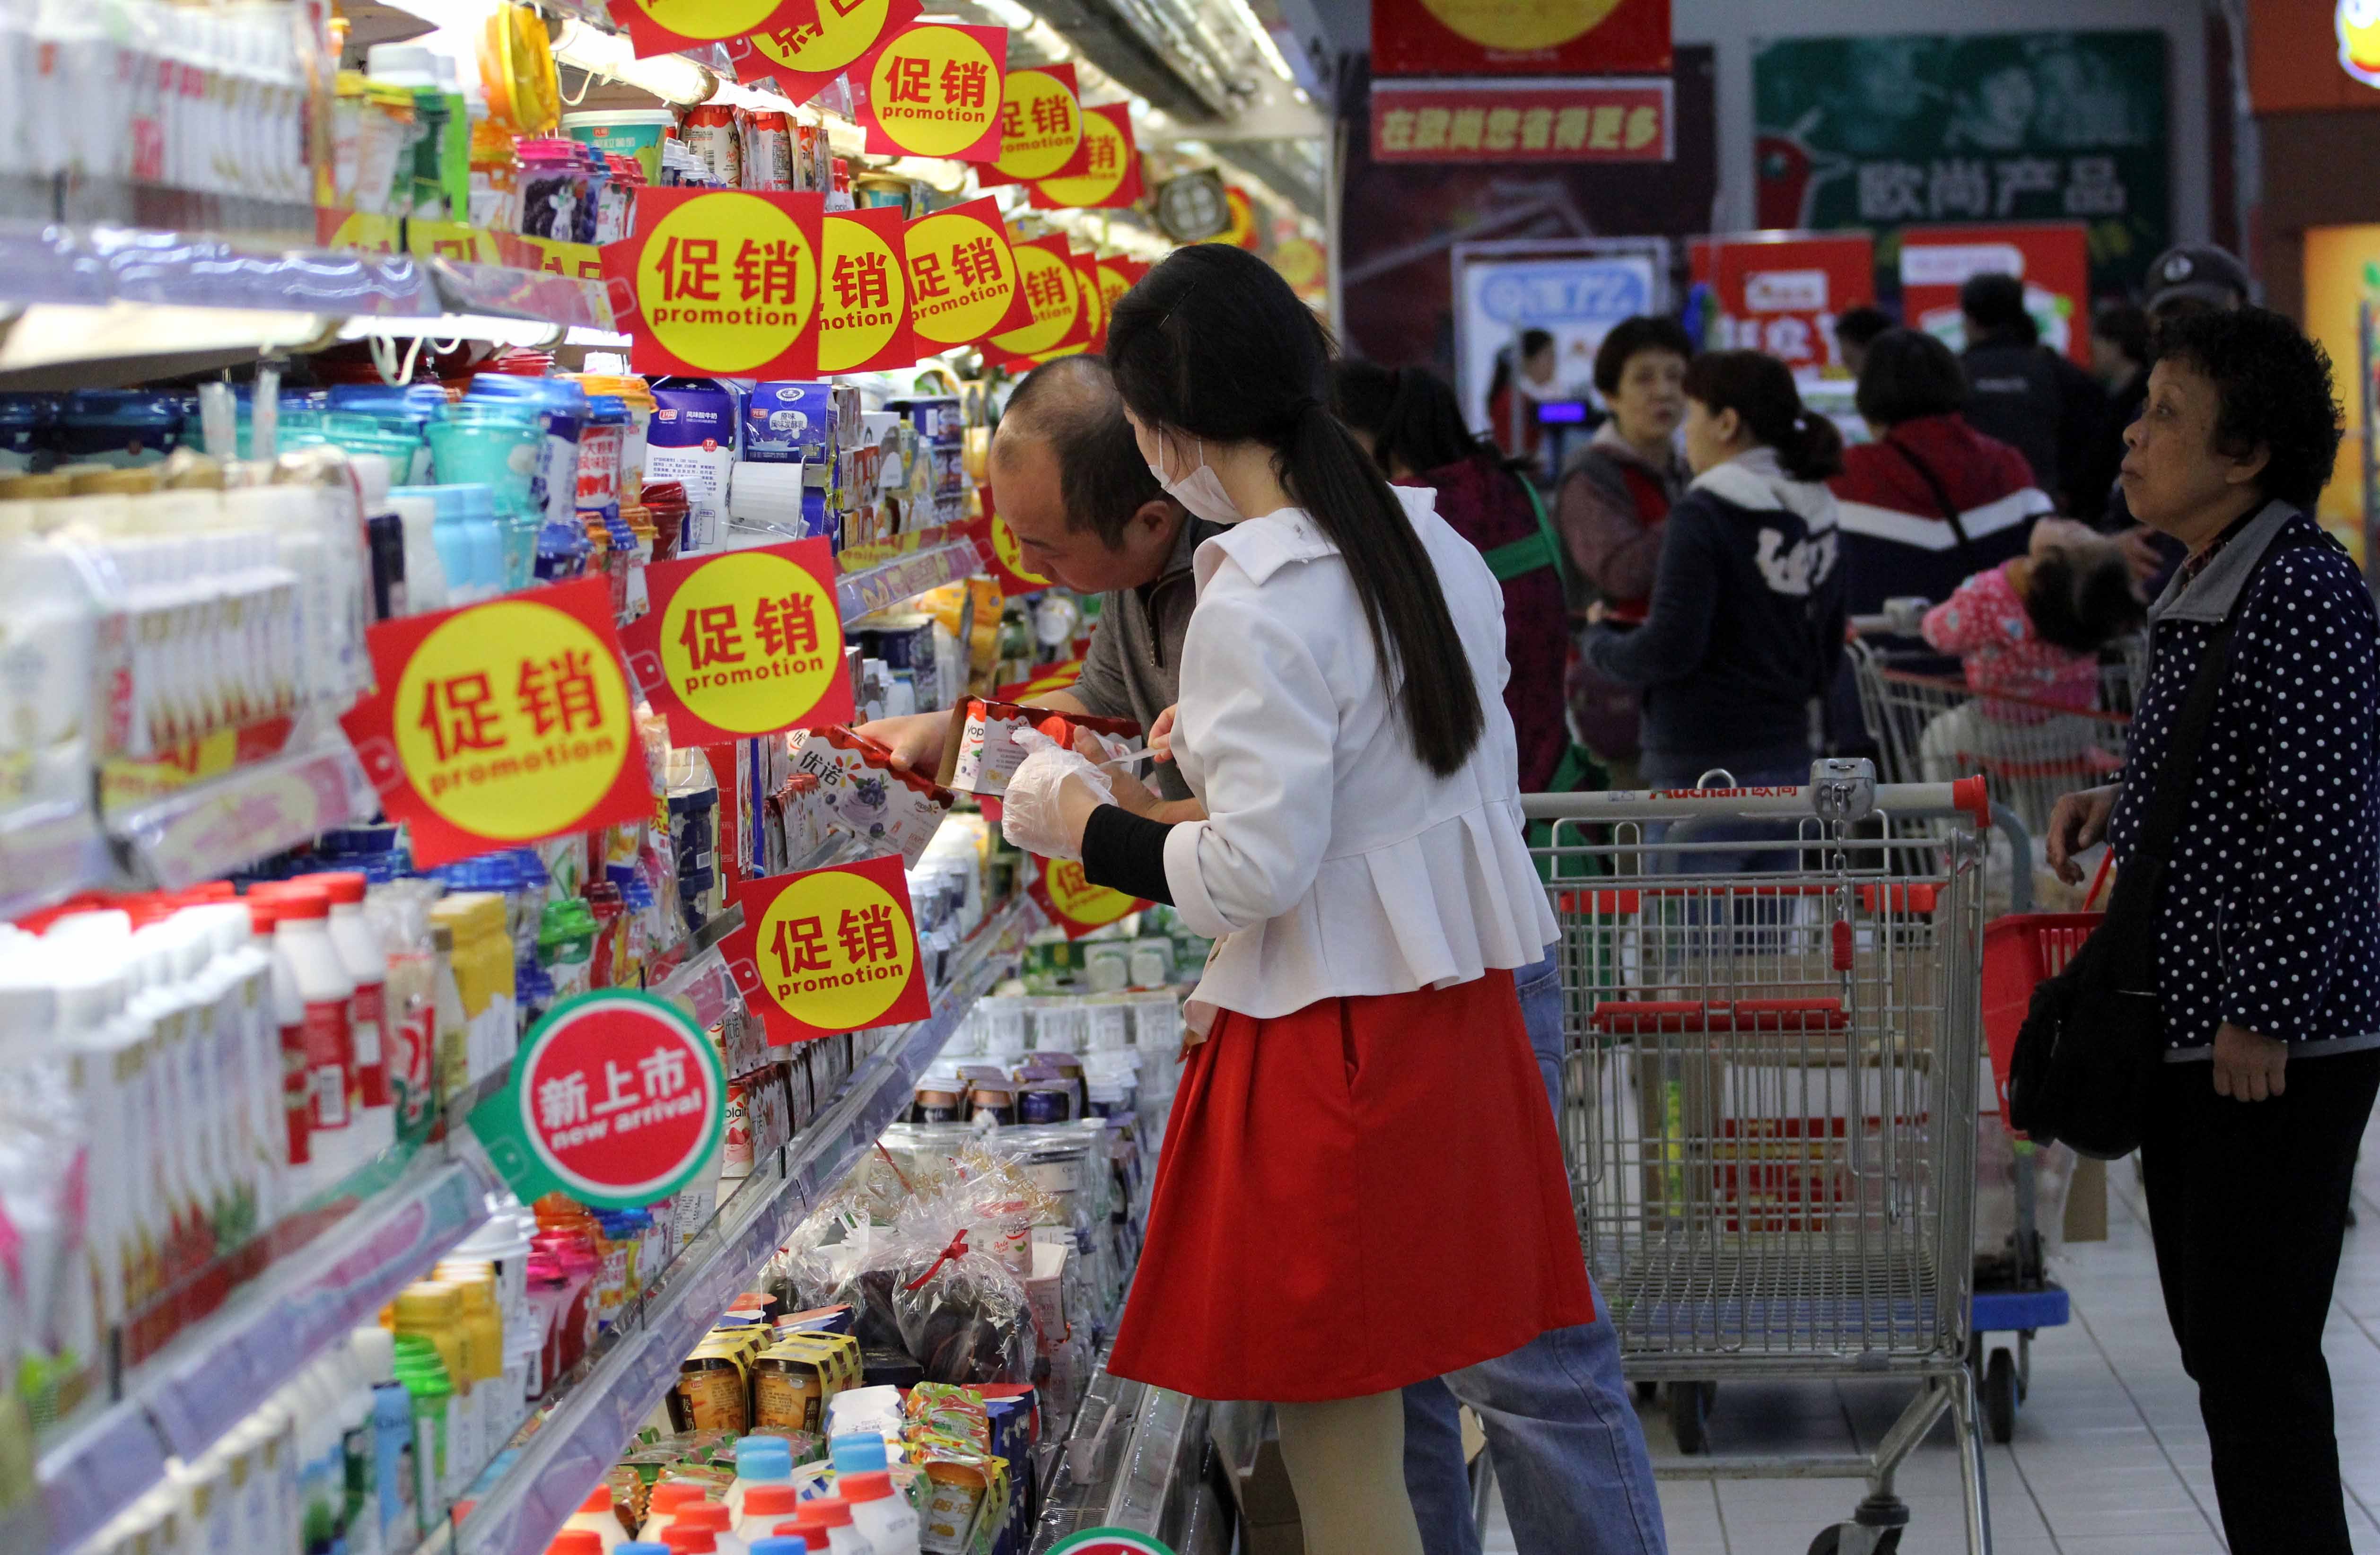 """--FILE--Customers shop for dairy products due to discounts at a supermarket in Nanjing city, east China's Jiangsu province, 16 October 2017.Consumers who are anticipating cheaper prices for products during the upcoming Nov 11 shopping festival may not necessarily find them online, a new study said. According to the 2017 China shopping report jointly released by market consultancies Bain & Co and Kantar Worldpanel, the online prices of many product categories are higher than those offered in physical stores, with the biggest price differences seen for toothbrushes, hair conditioners and kitchen cleansing supplies. Jason Yu, general manager of Kantar Worldpanel for Greater China, said the price differences can be largely attributed to the fact that relatively more high-end products are purchased online. """"While Chinese consumers used to shop online for low prices in the past, it has been increasingly noticeable in the recent five years that people prefer products that indicate a better lifestyle or entail more added value,"""" he said. As a result, the sales of imported goods, especially food products and personal care products, have risen significantly, he said. """"To cater to this trend, leading e-commerce players such as Alibaba and JD.com have upgraded their offerings on their platforms to meet the demand of the rising middle class and younger consumers,"""" he said.No Use China. No Use France."""